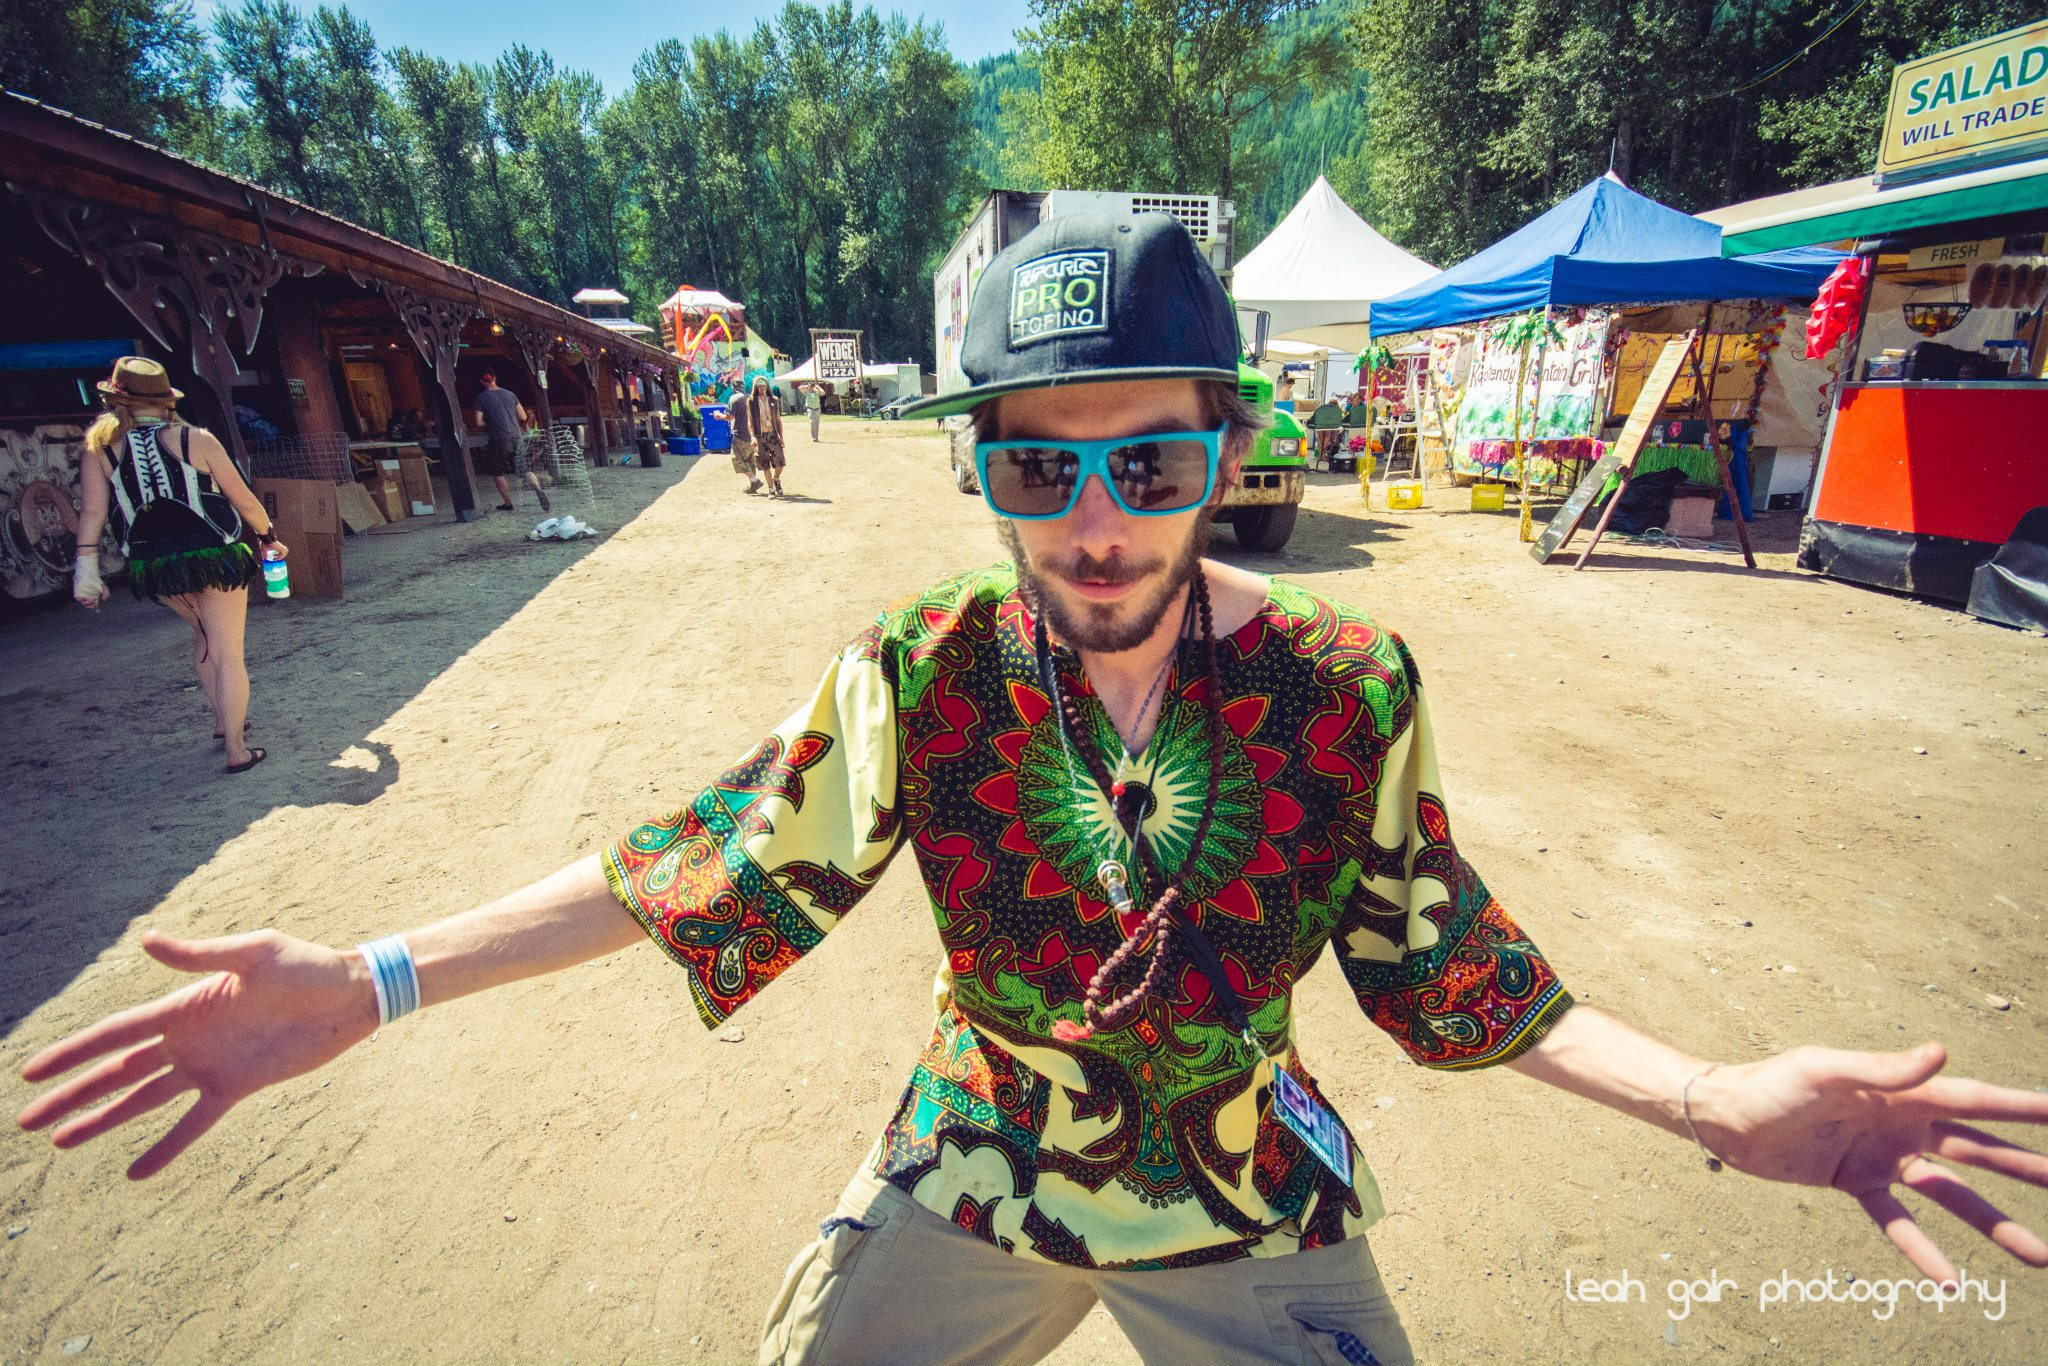 The Funkee Wadd waiting to assault people with hugs at Shambhala. Photo by  Leah Gair Photo .